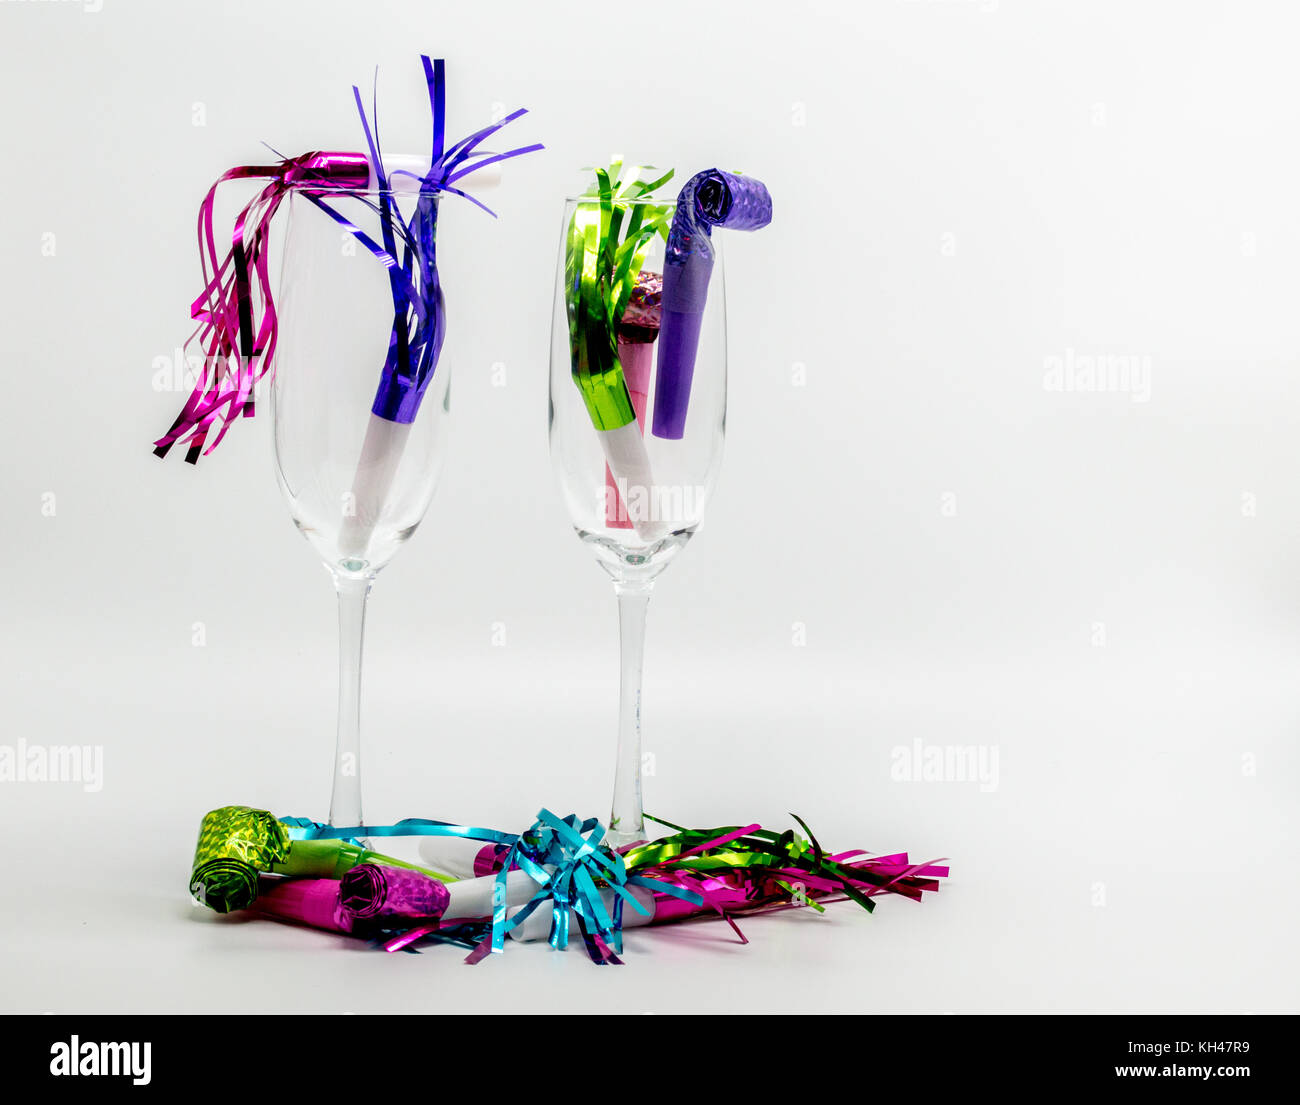 The morning after-2 champagne flutes filled with colorful New Years Eve noisemakers isolated on a solid background - Stock Image